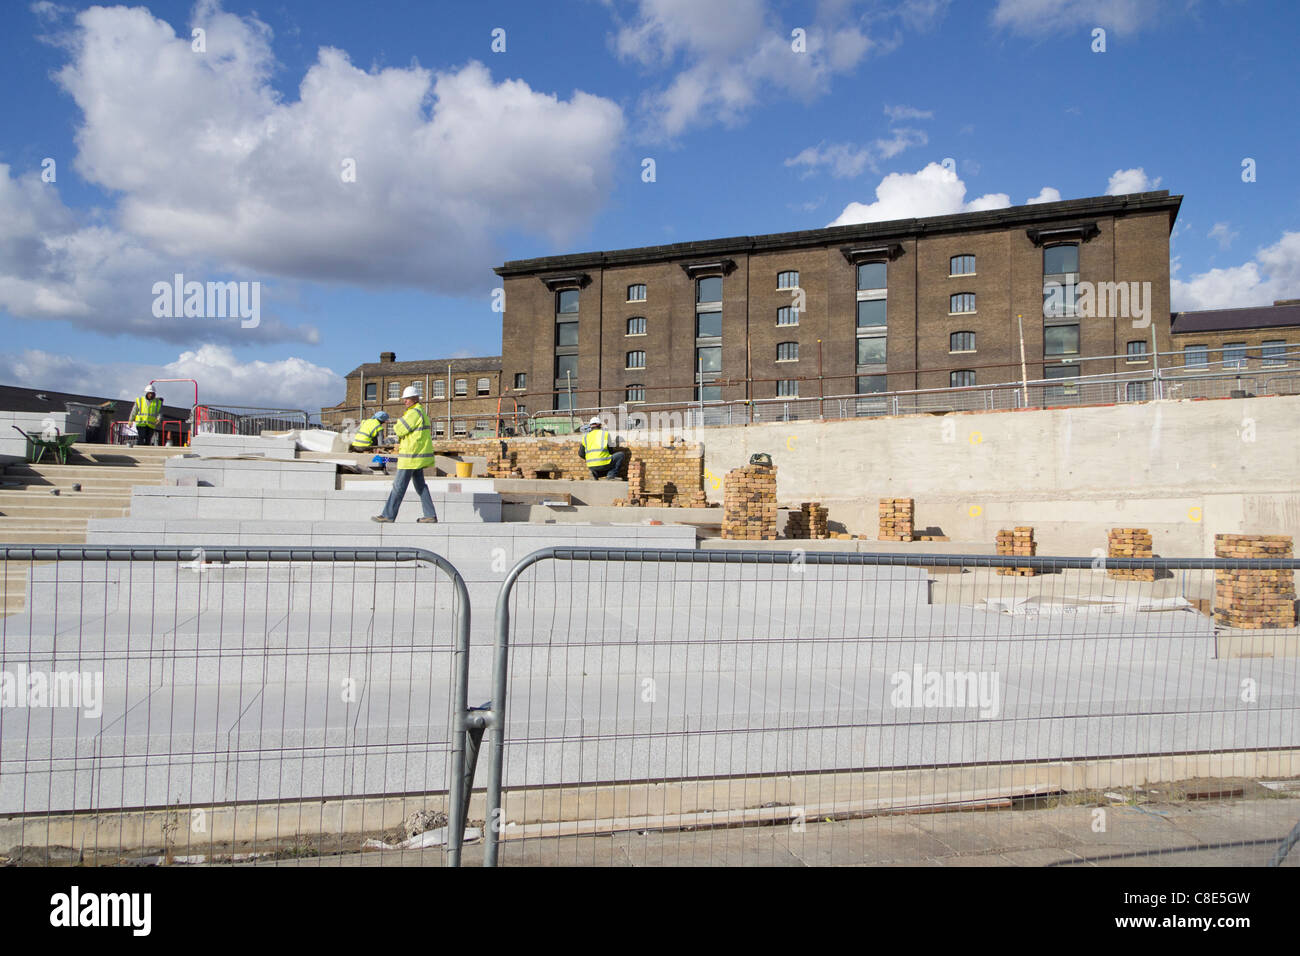 Hard landscaping work being carried out on the banks of the Regents Canal at the Kings Cross development, Stock Photo